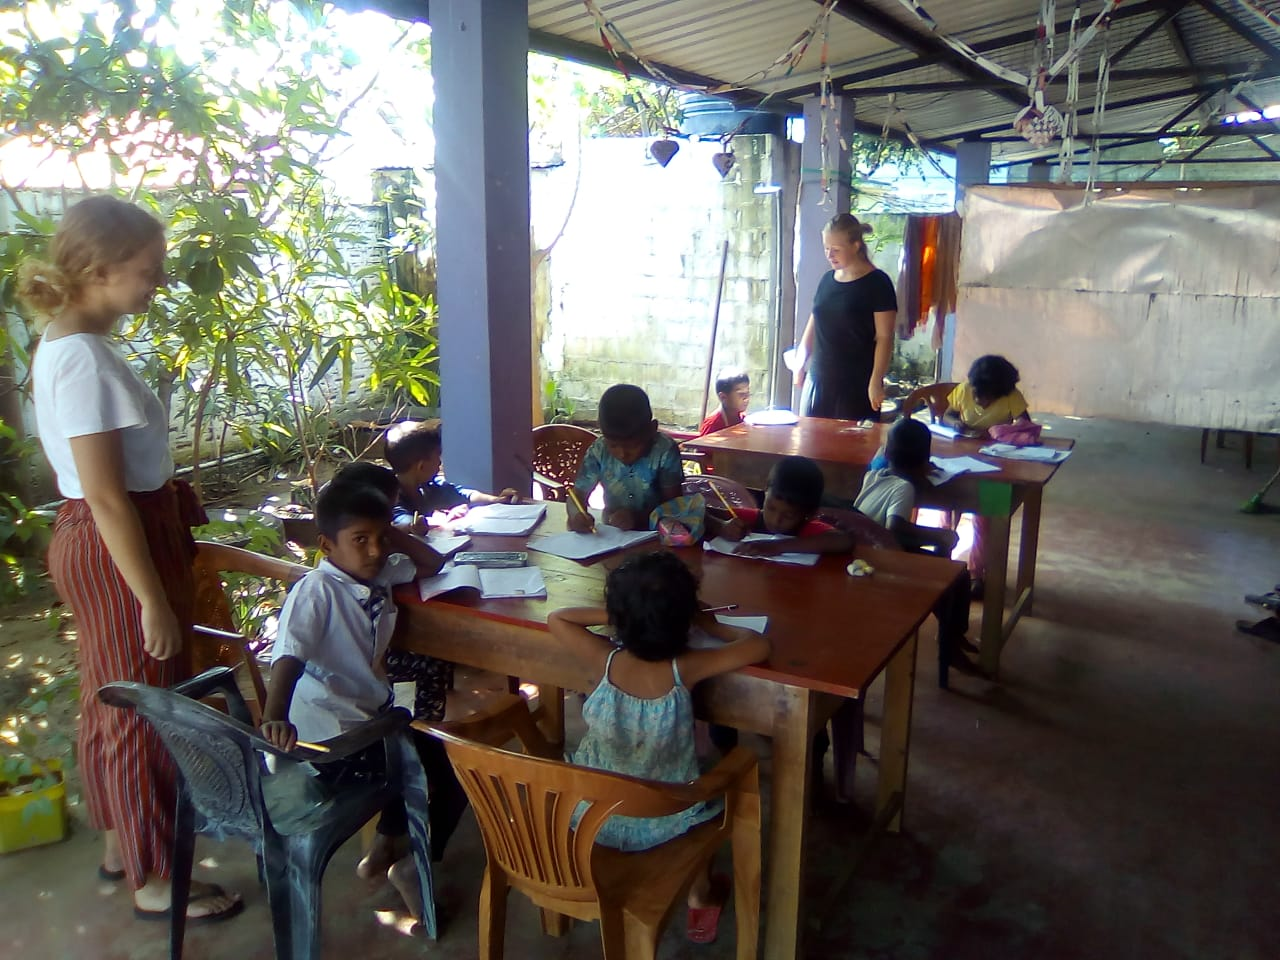 Evening English classes for poor and students